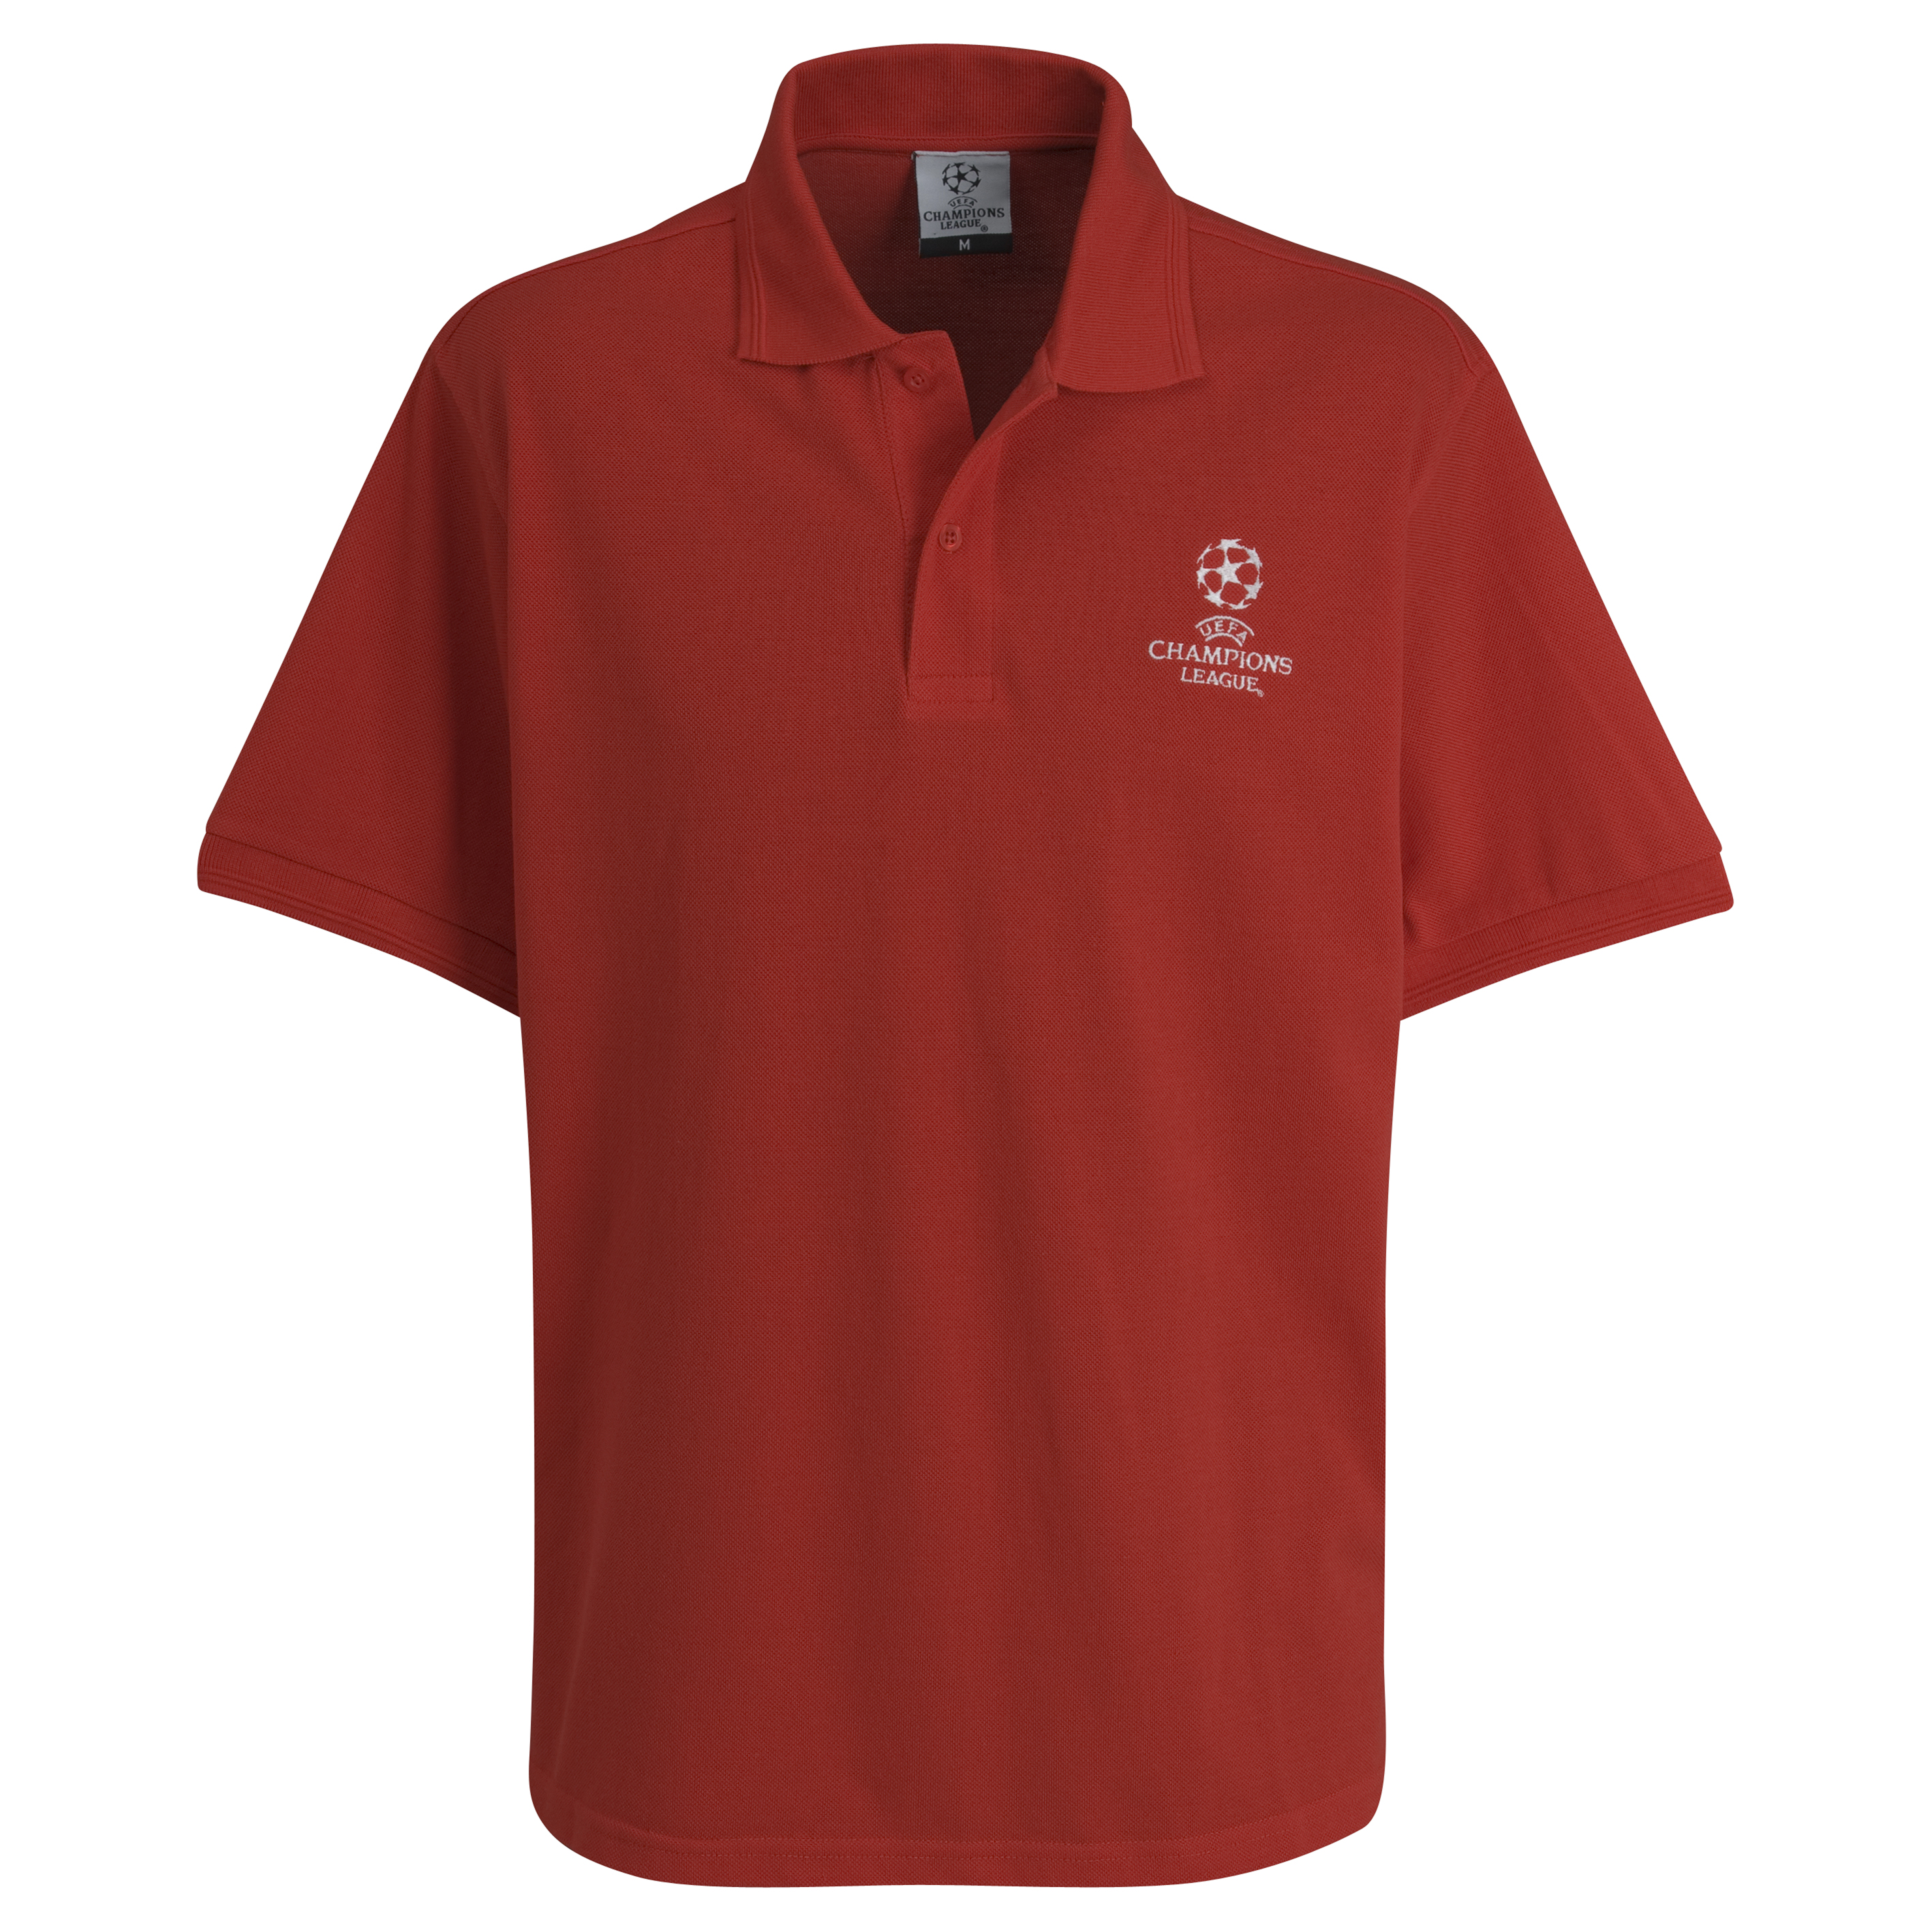 UEFA Champions League Pique Polo - Red - Kids